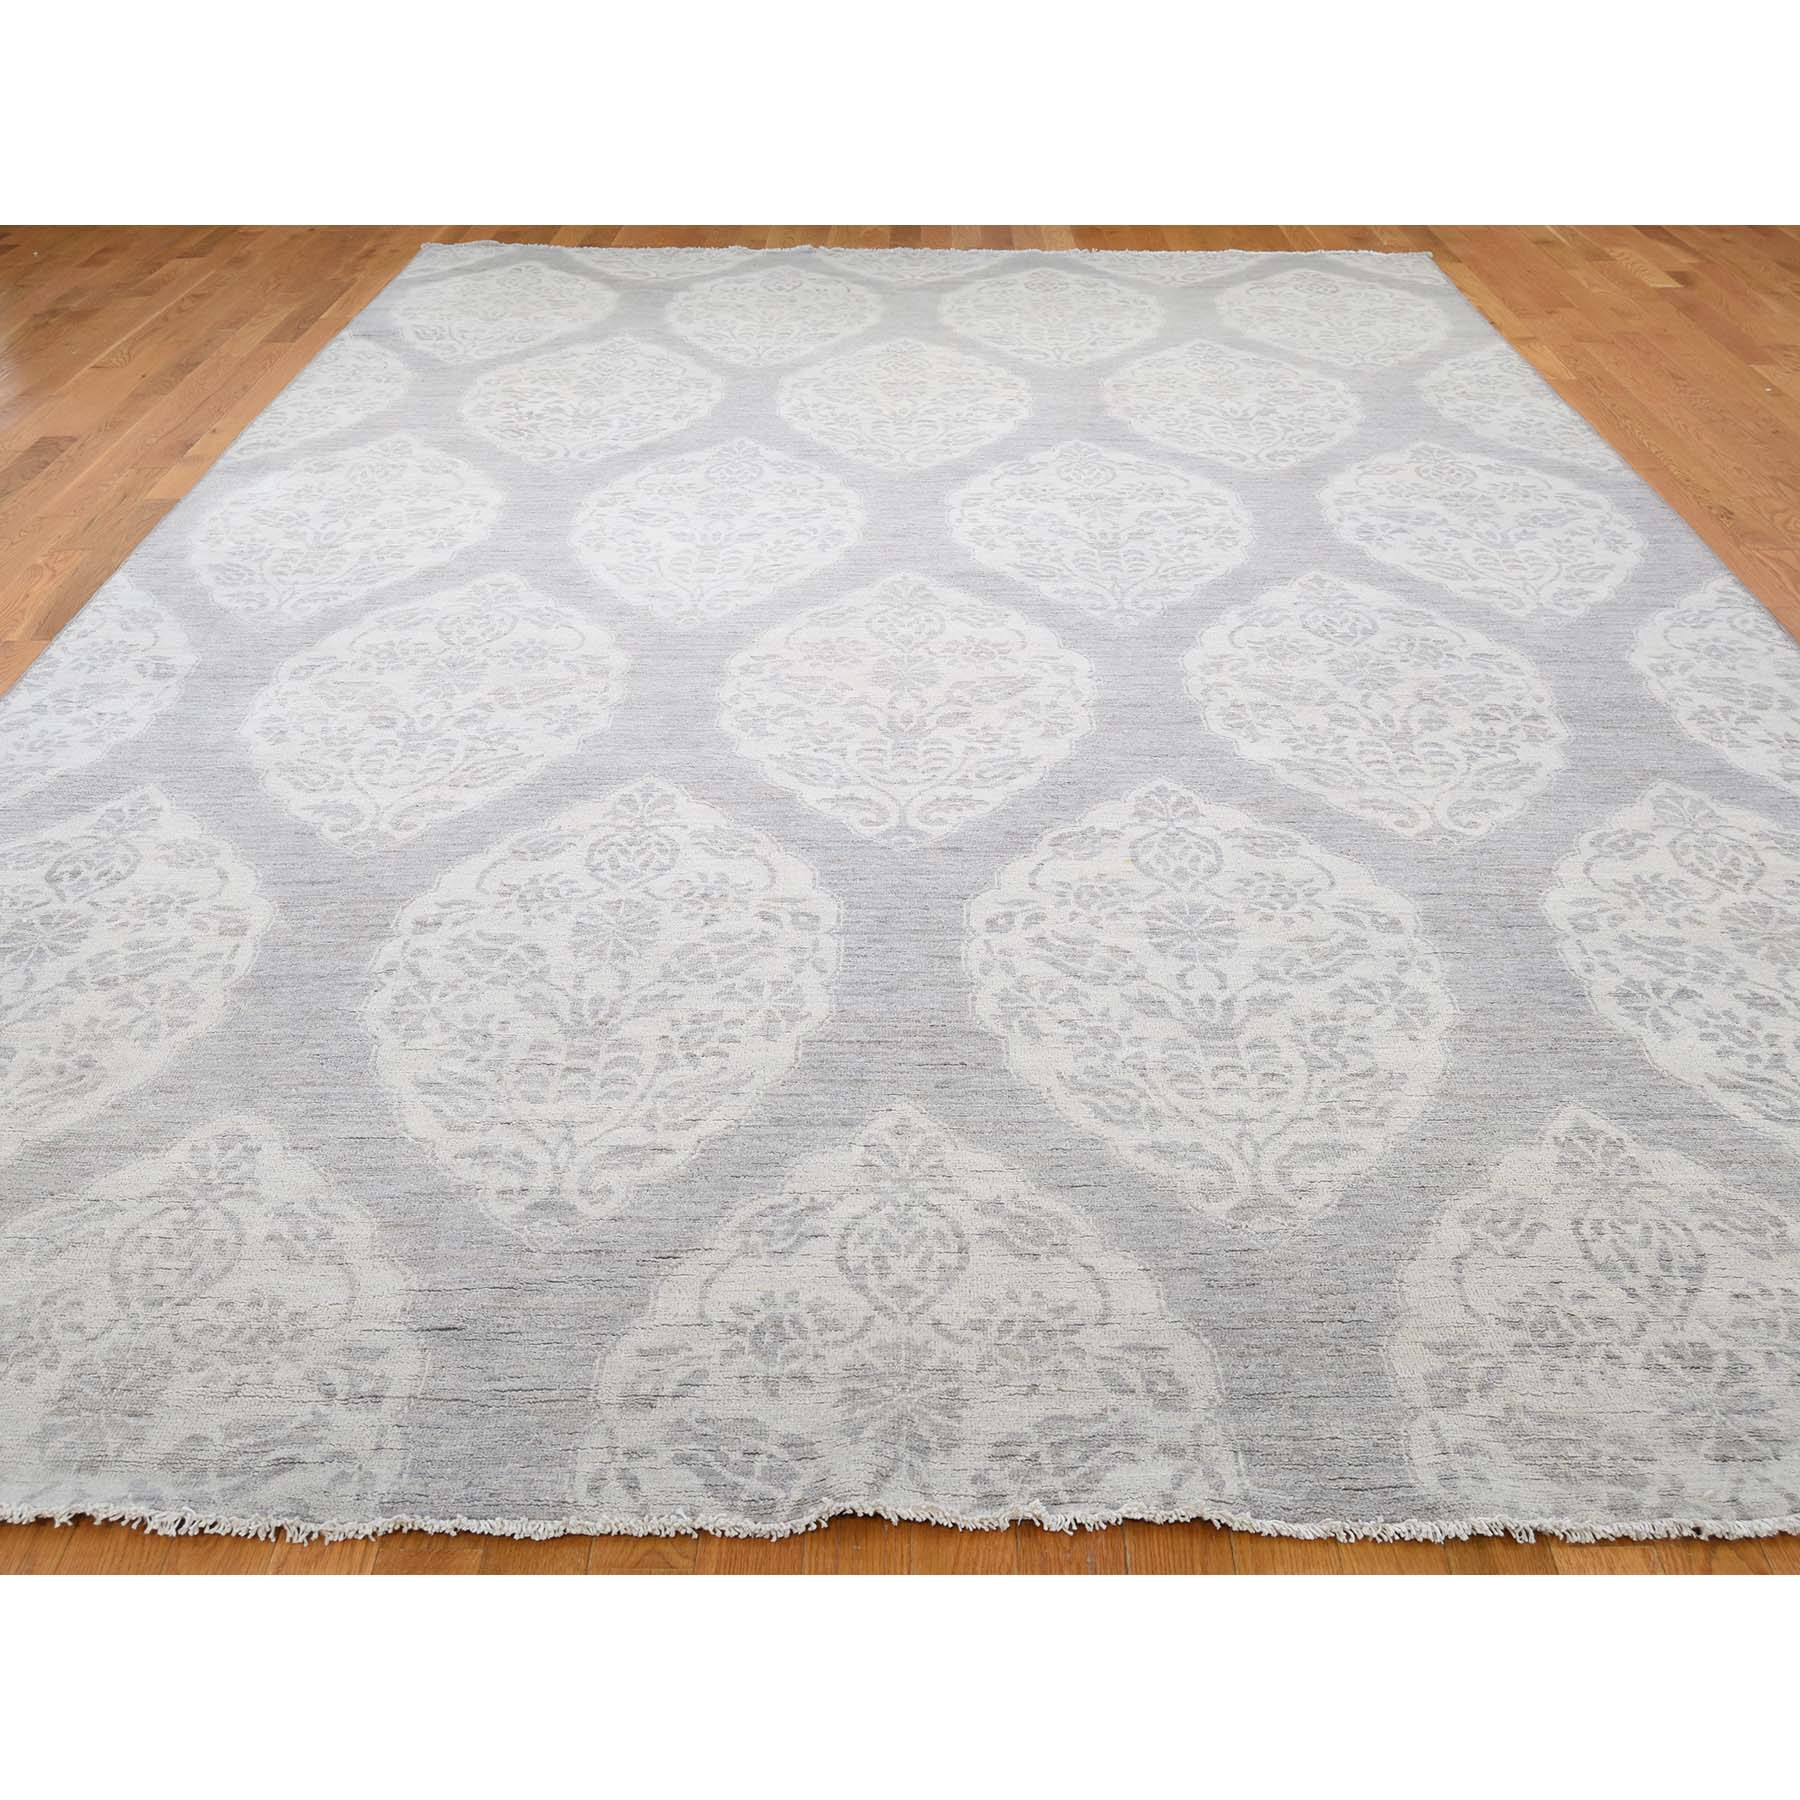 8-8 x13-4  Long And Narrow Peshawar Flower Design Grey Hand-Knotted Oriental Rug